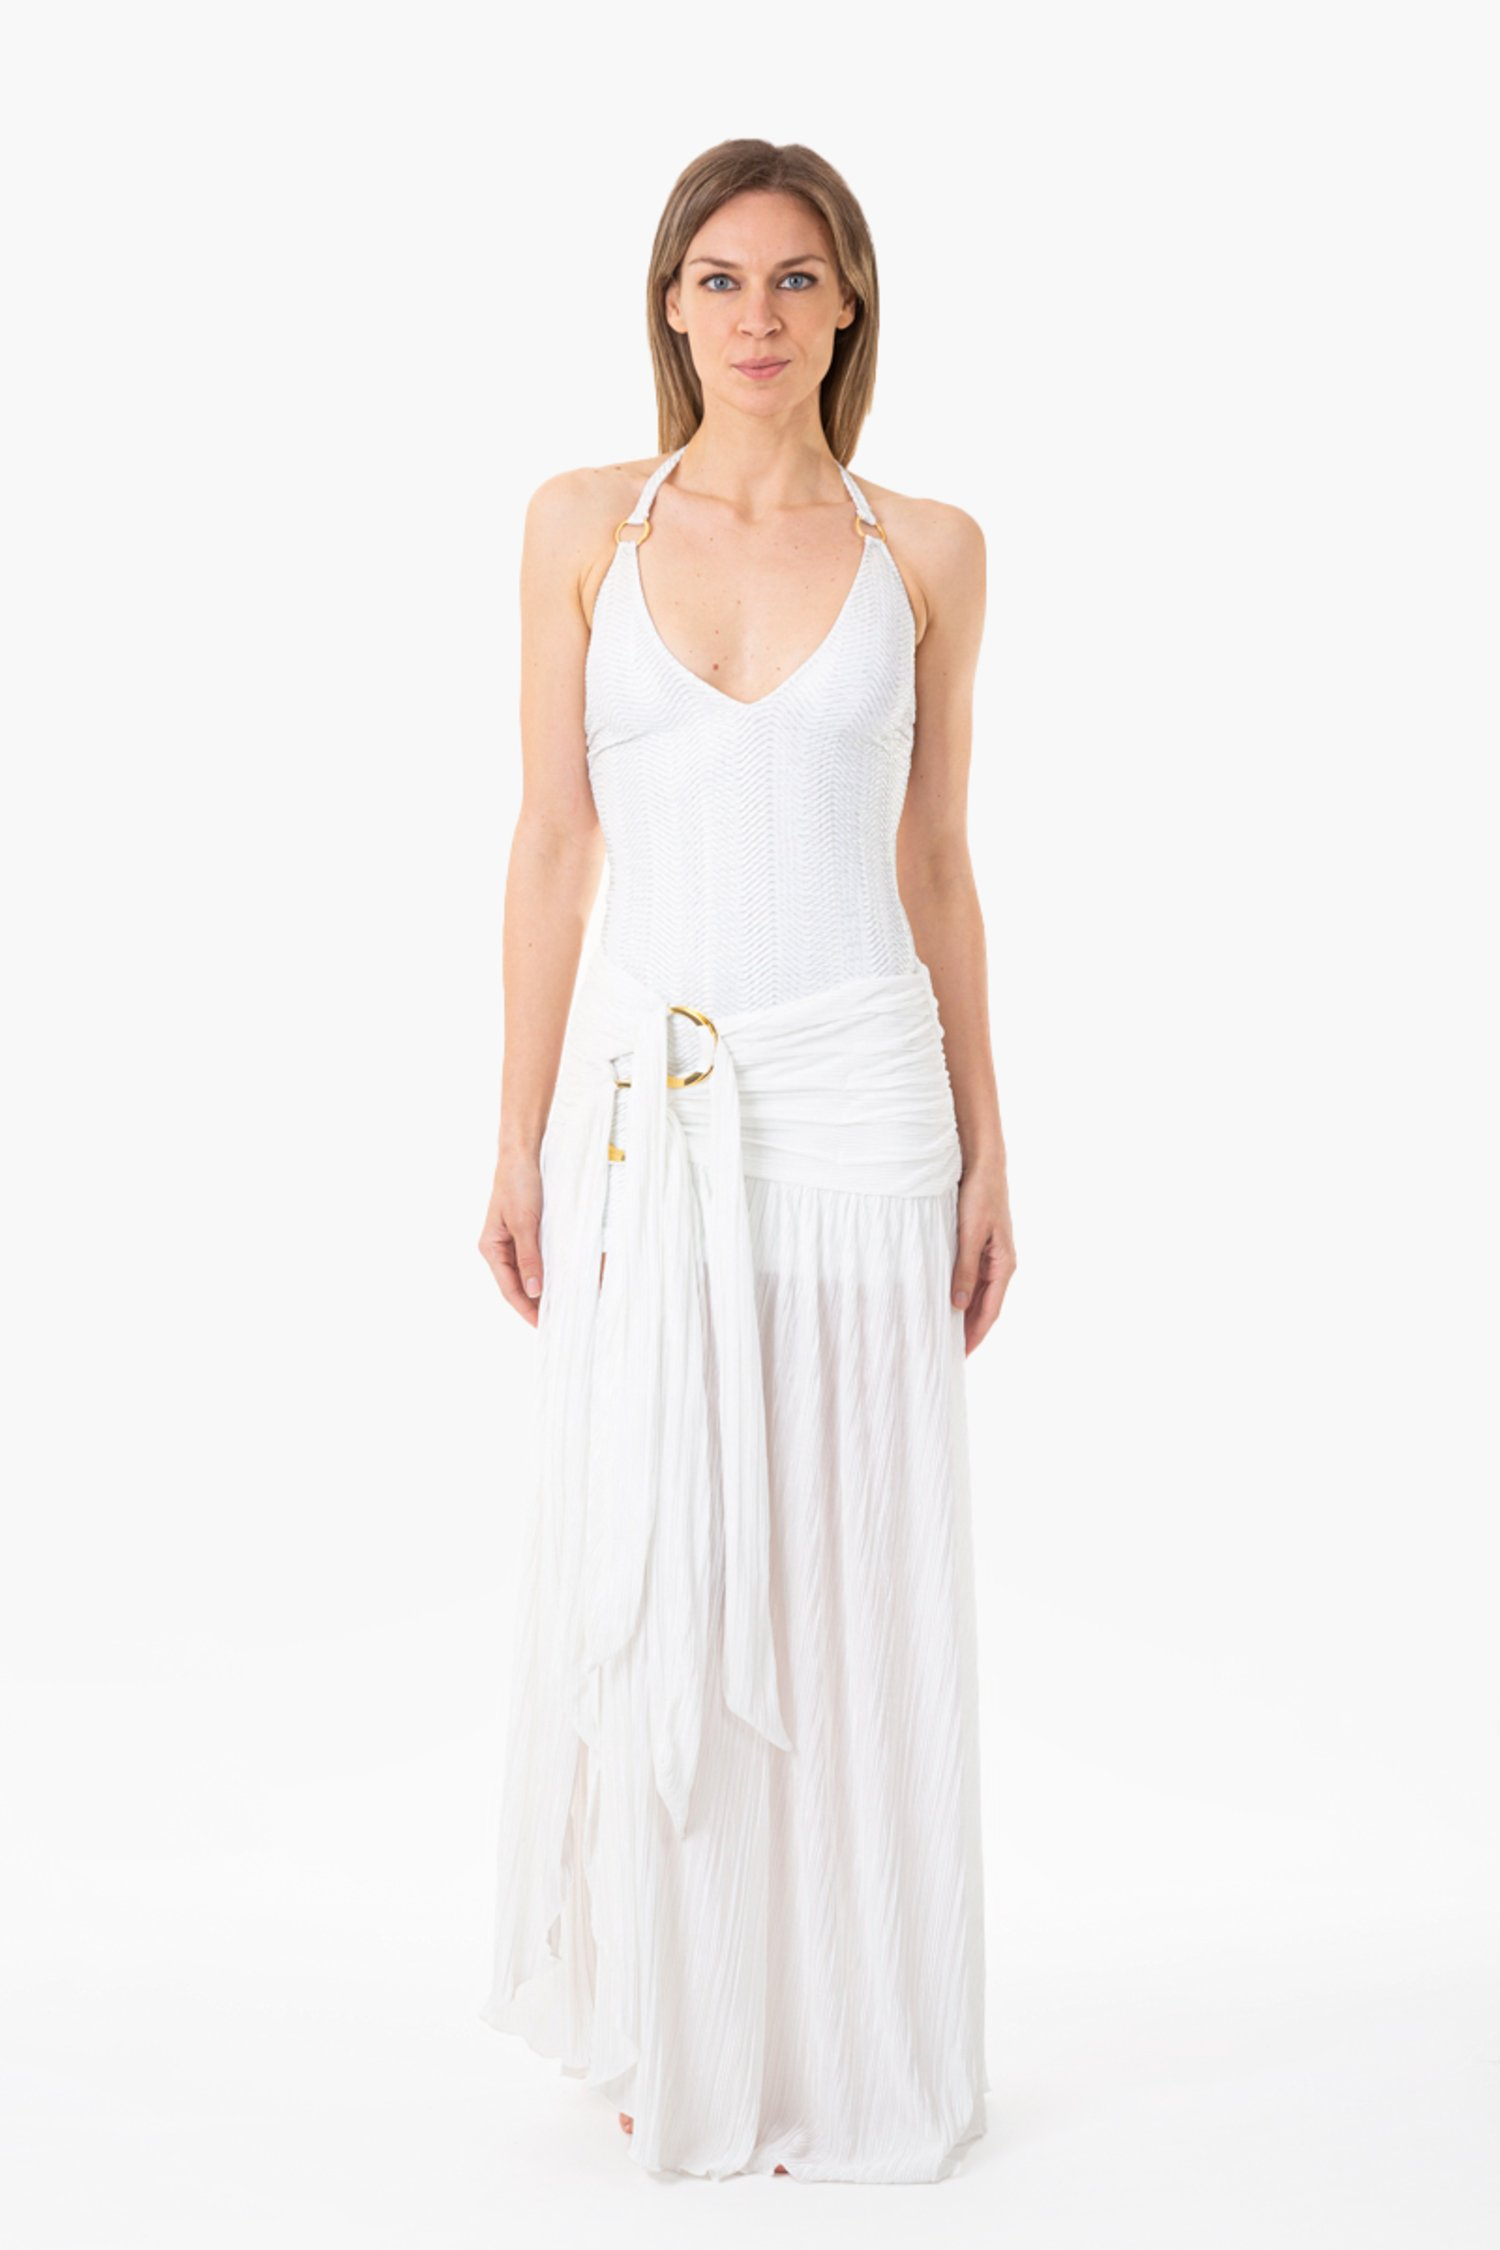 DRESS WITH RINGS, WIDE SKIRT AND RINGS - Microfibra Operata Splamata Bianco